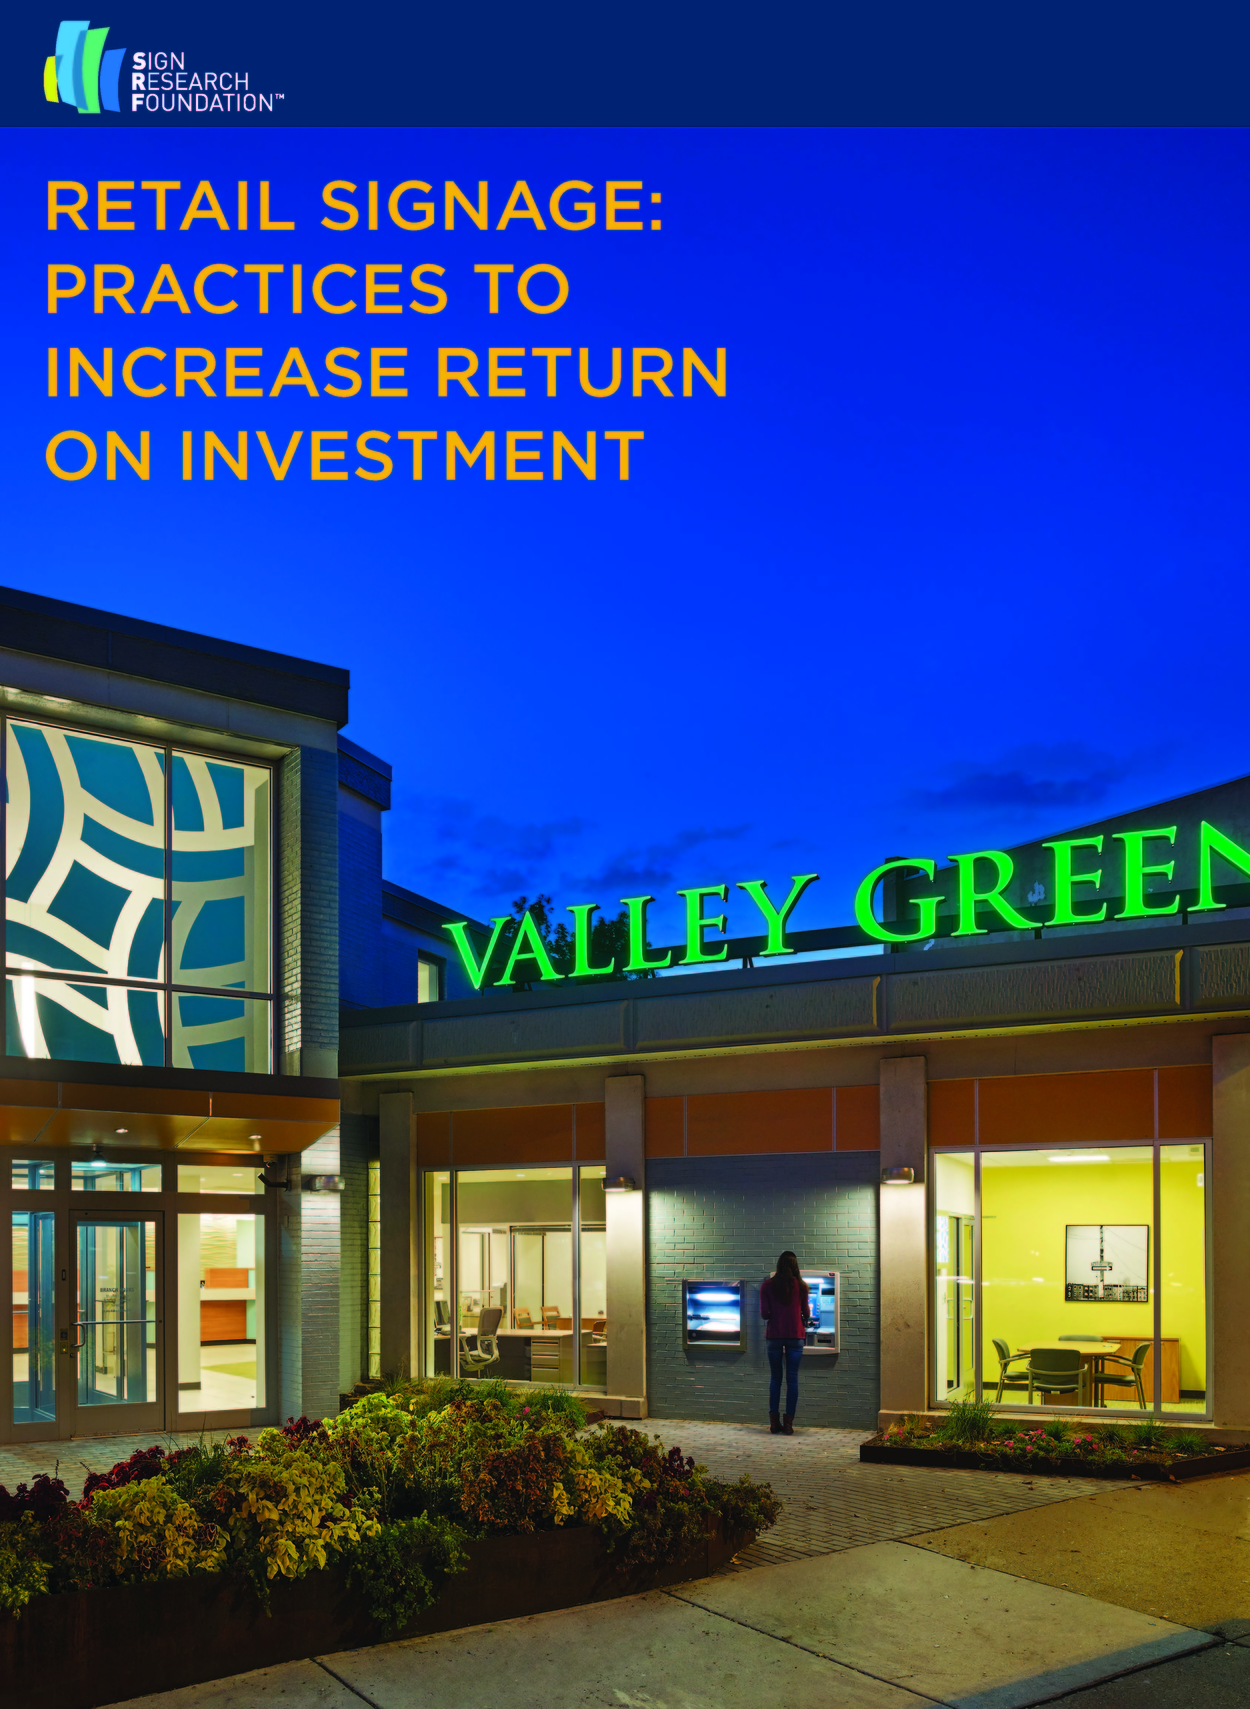 Retail Signage: Practices to Increase Return on Investment (ROI)